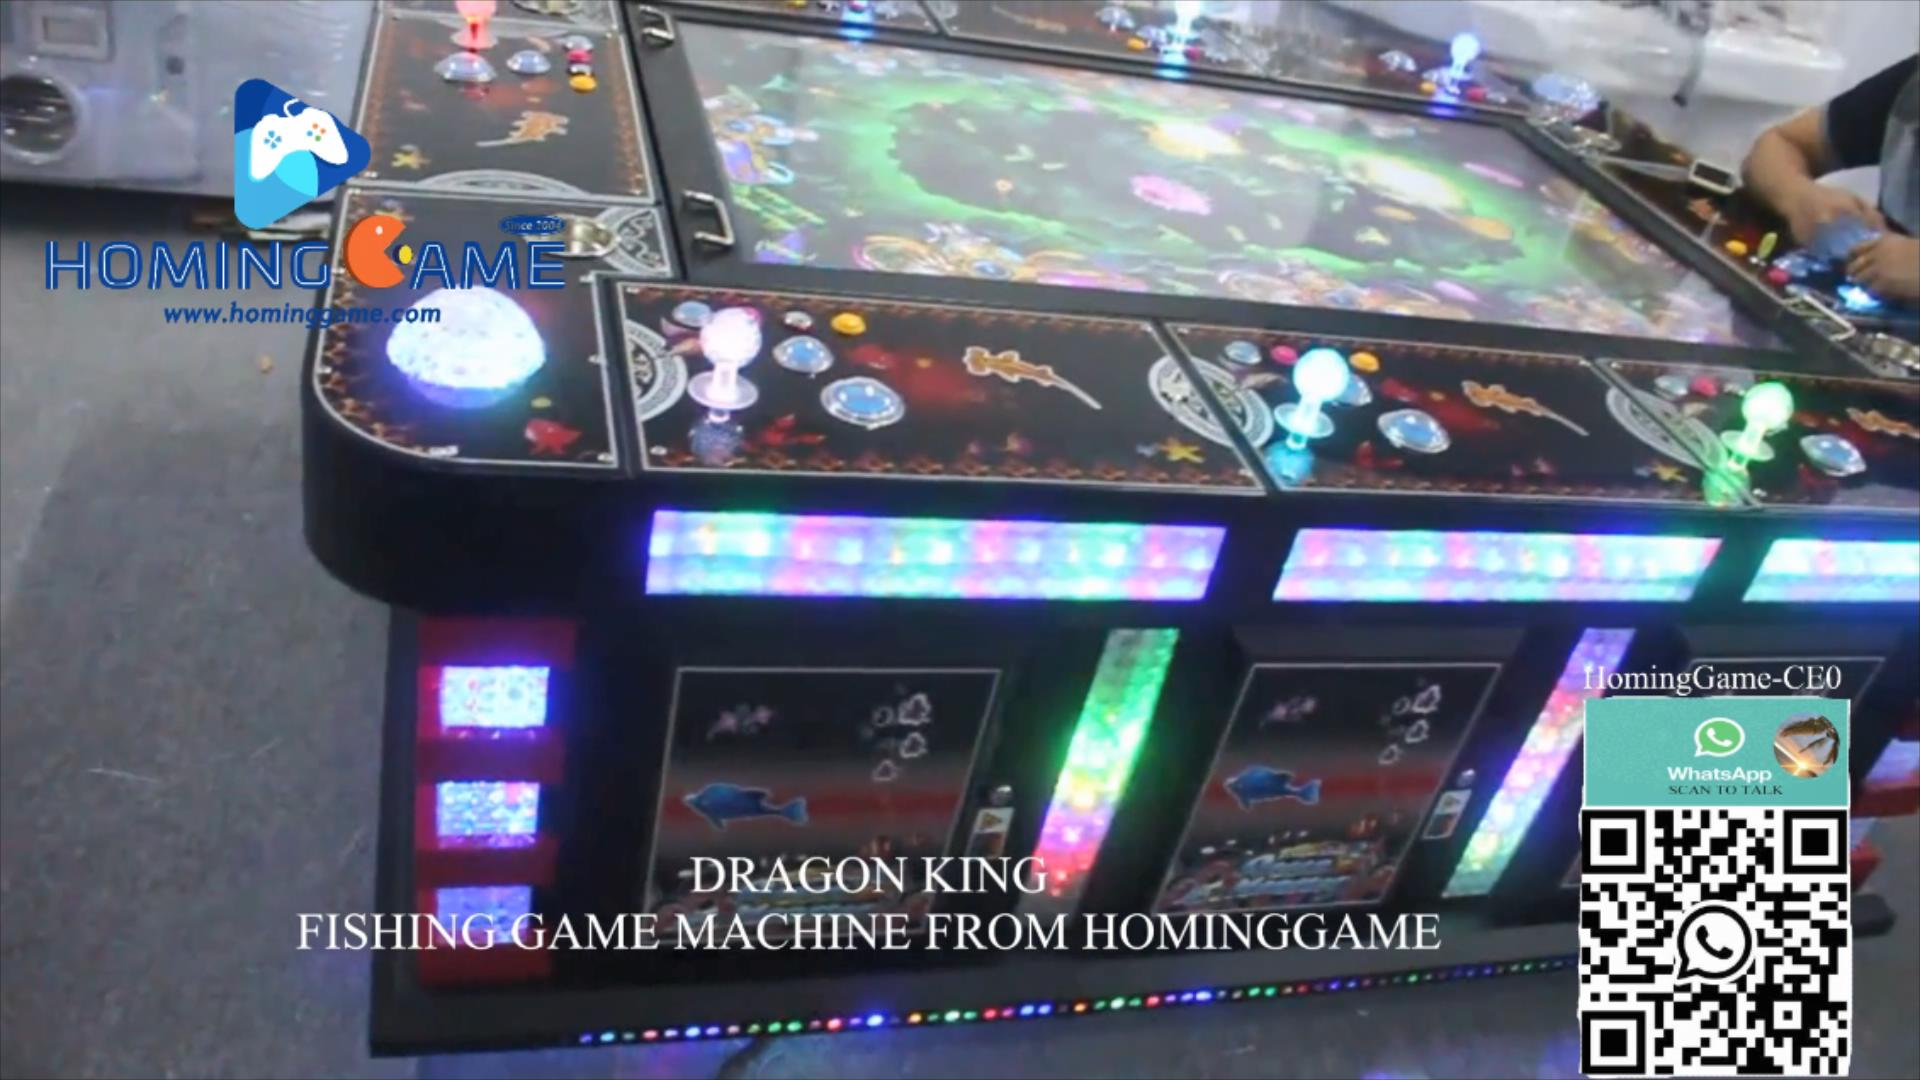 85 large screen 10 player fishing game machine,85